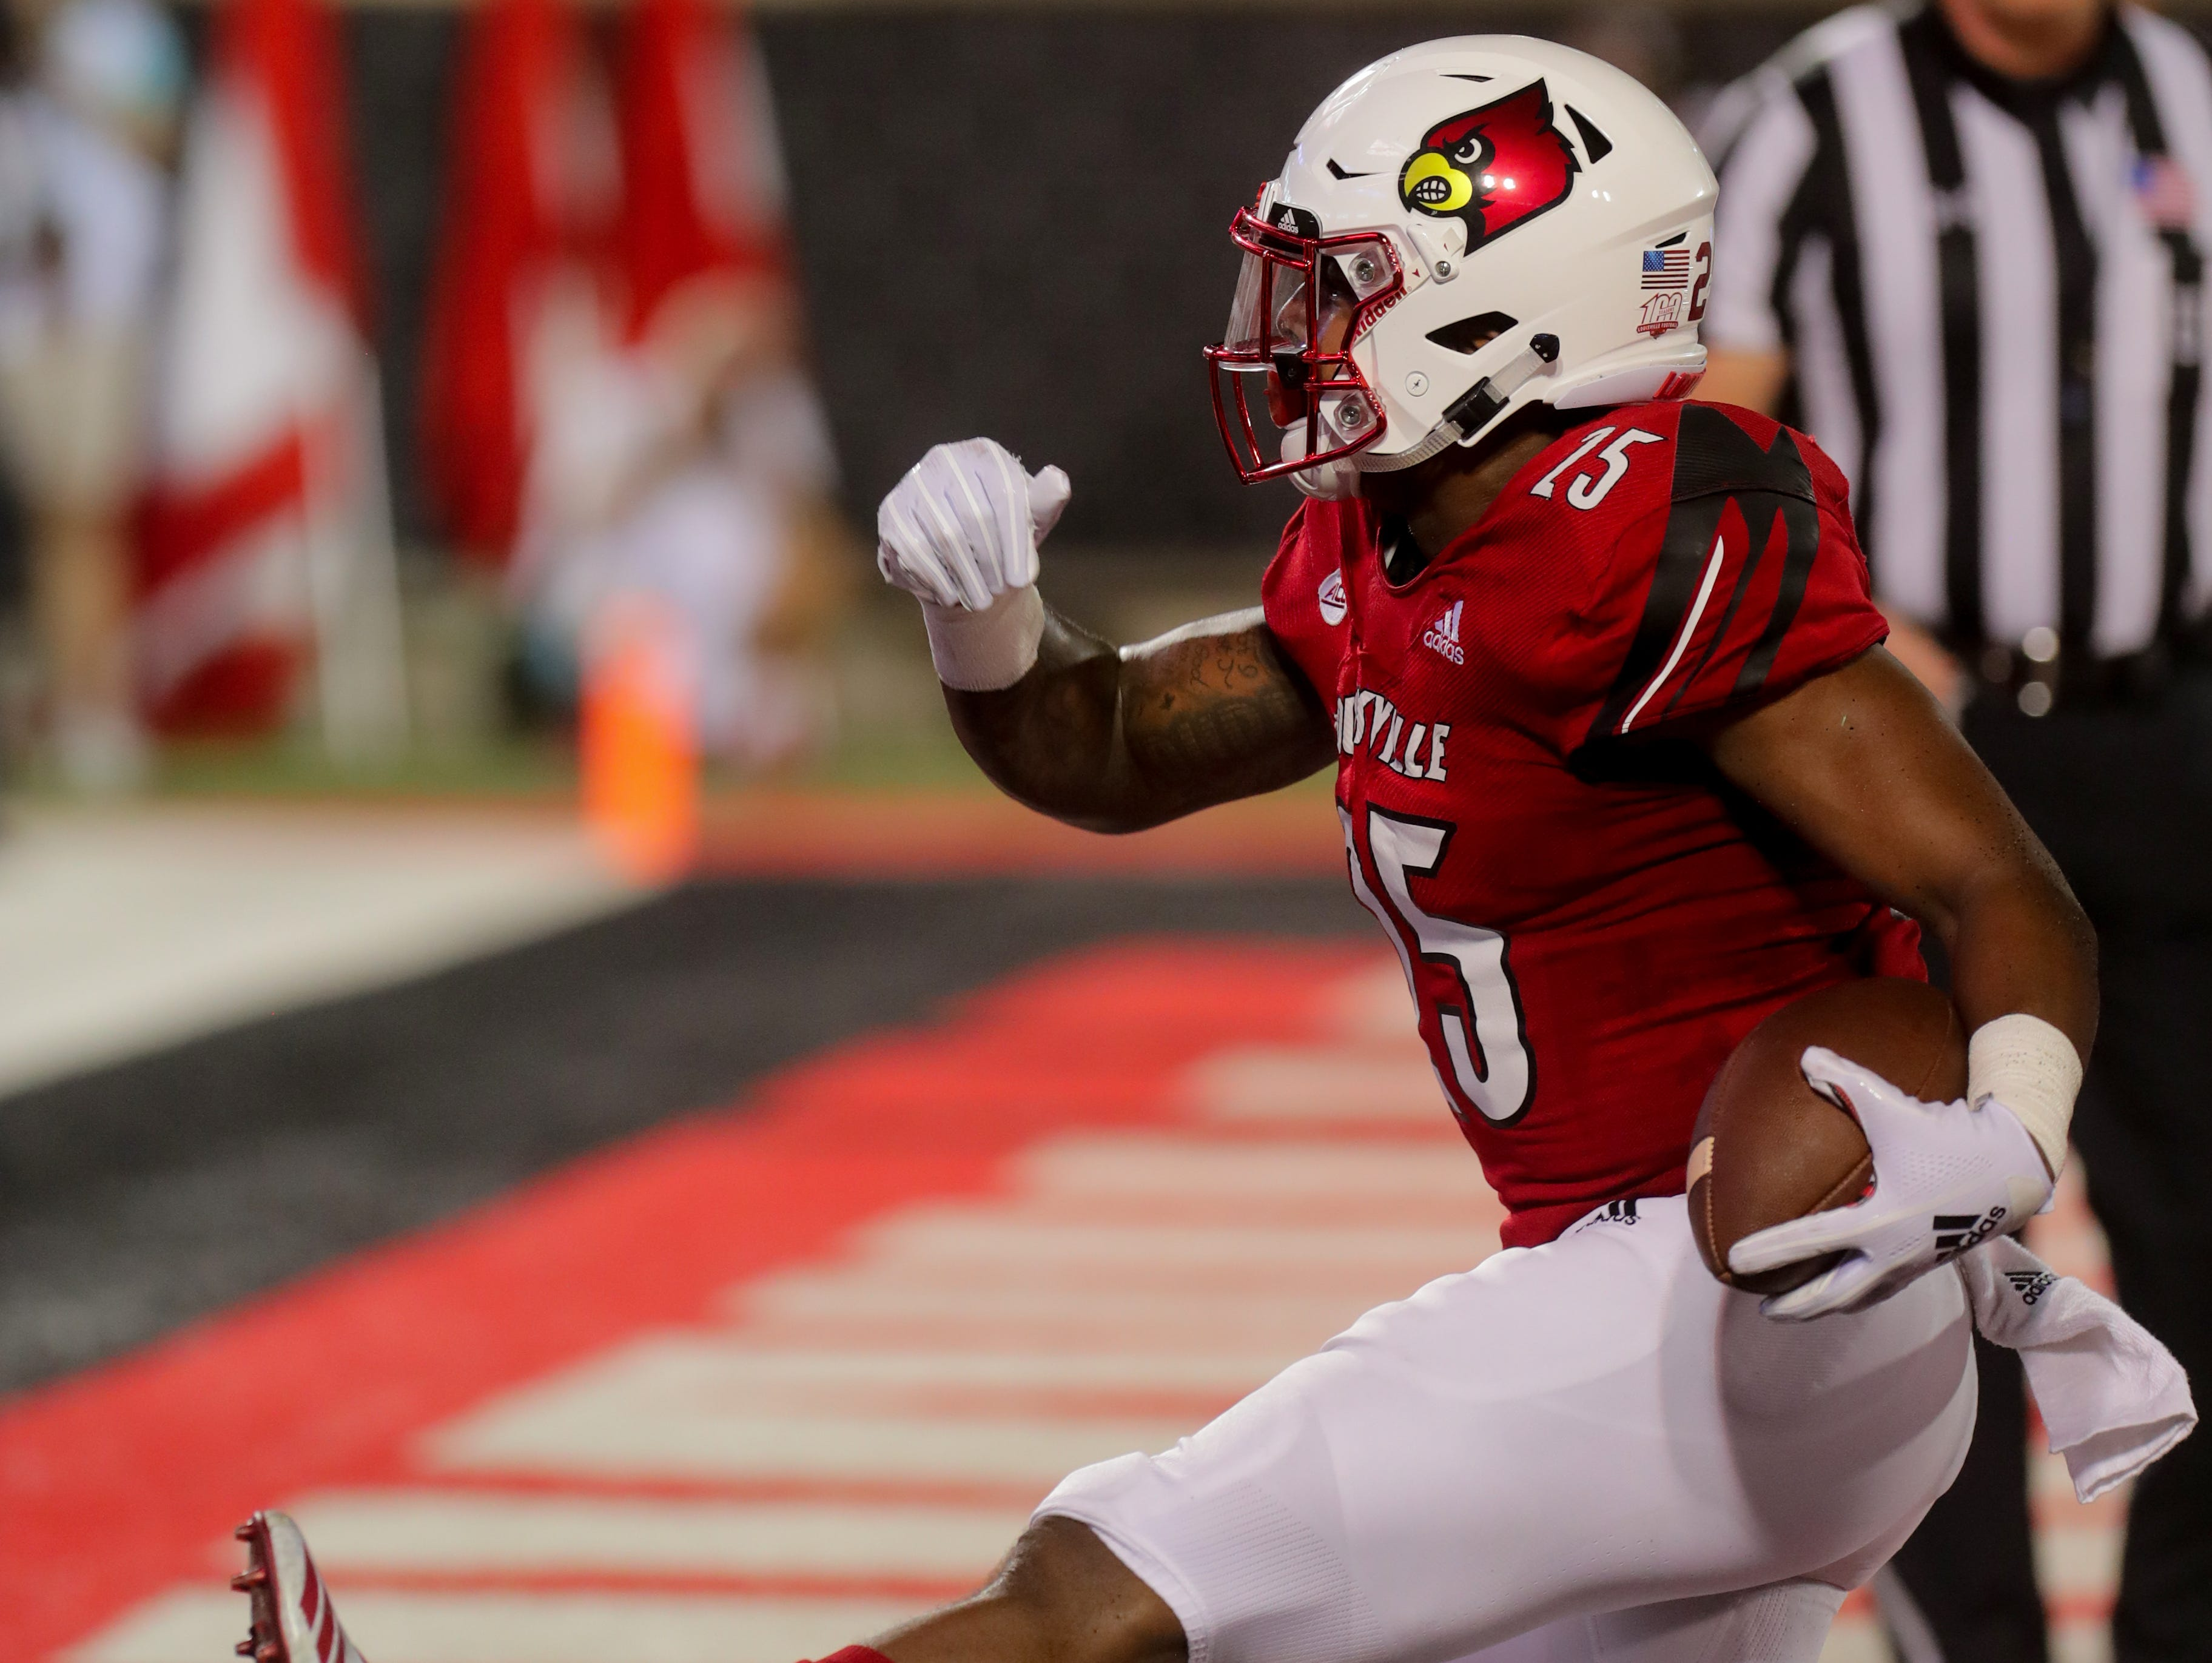 Louisville's Dae Williams scores his second touchdown of the night. 